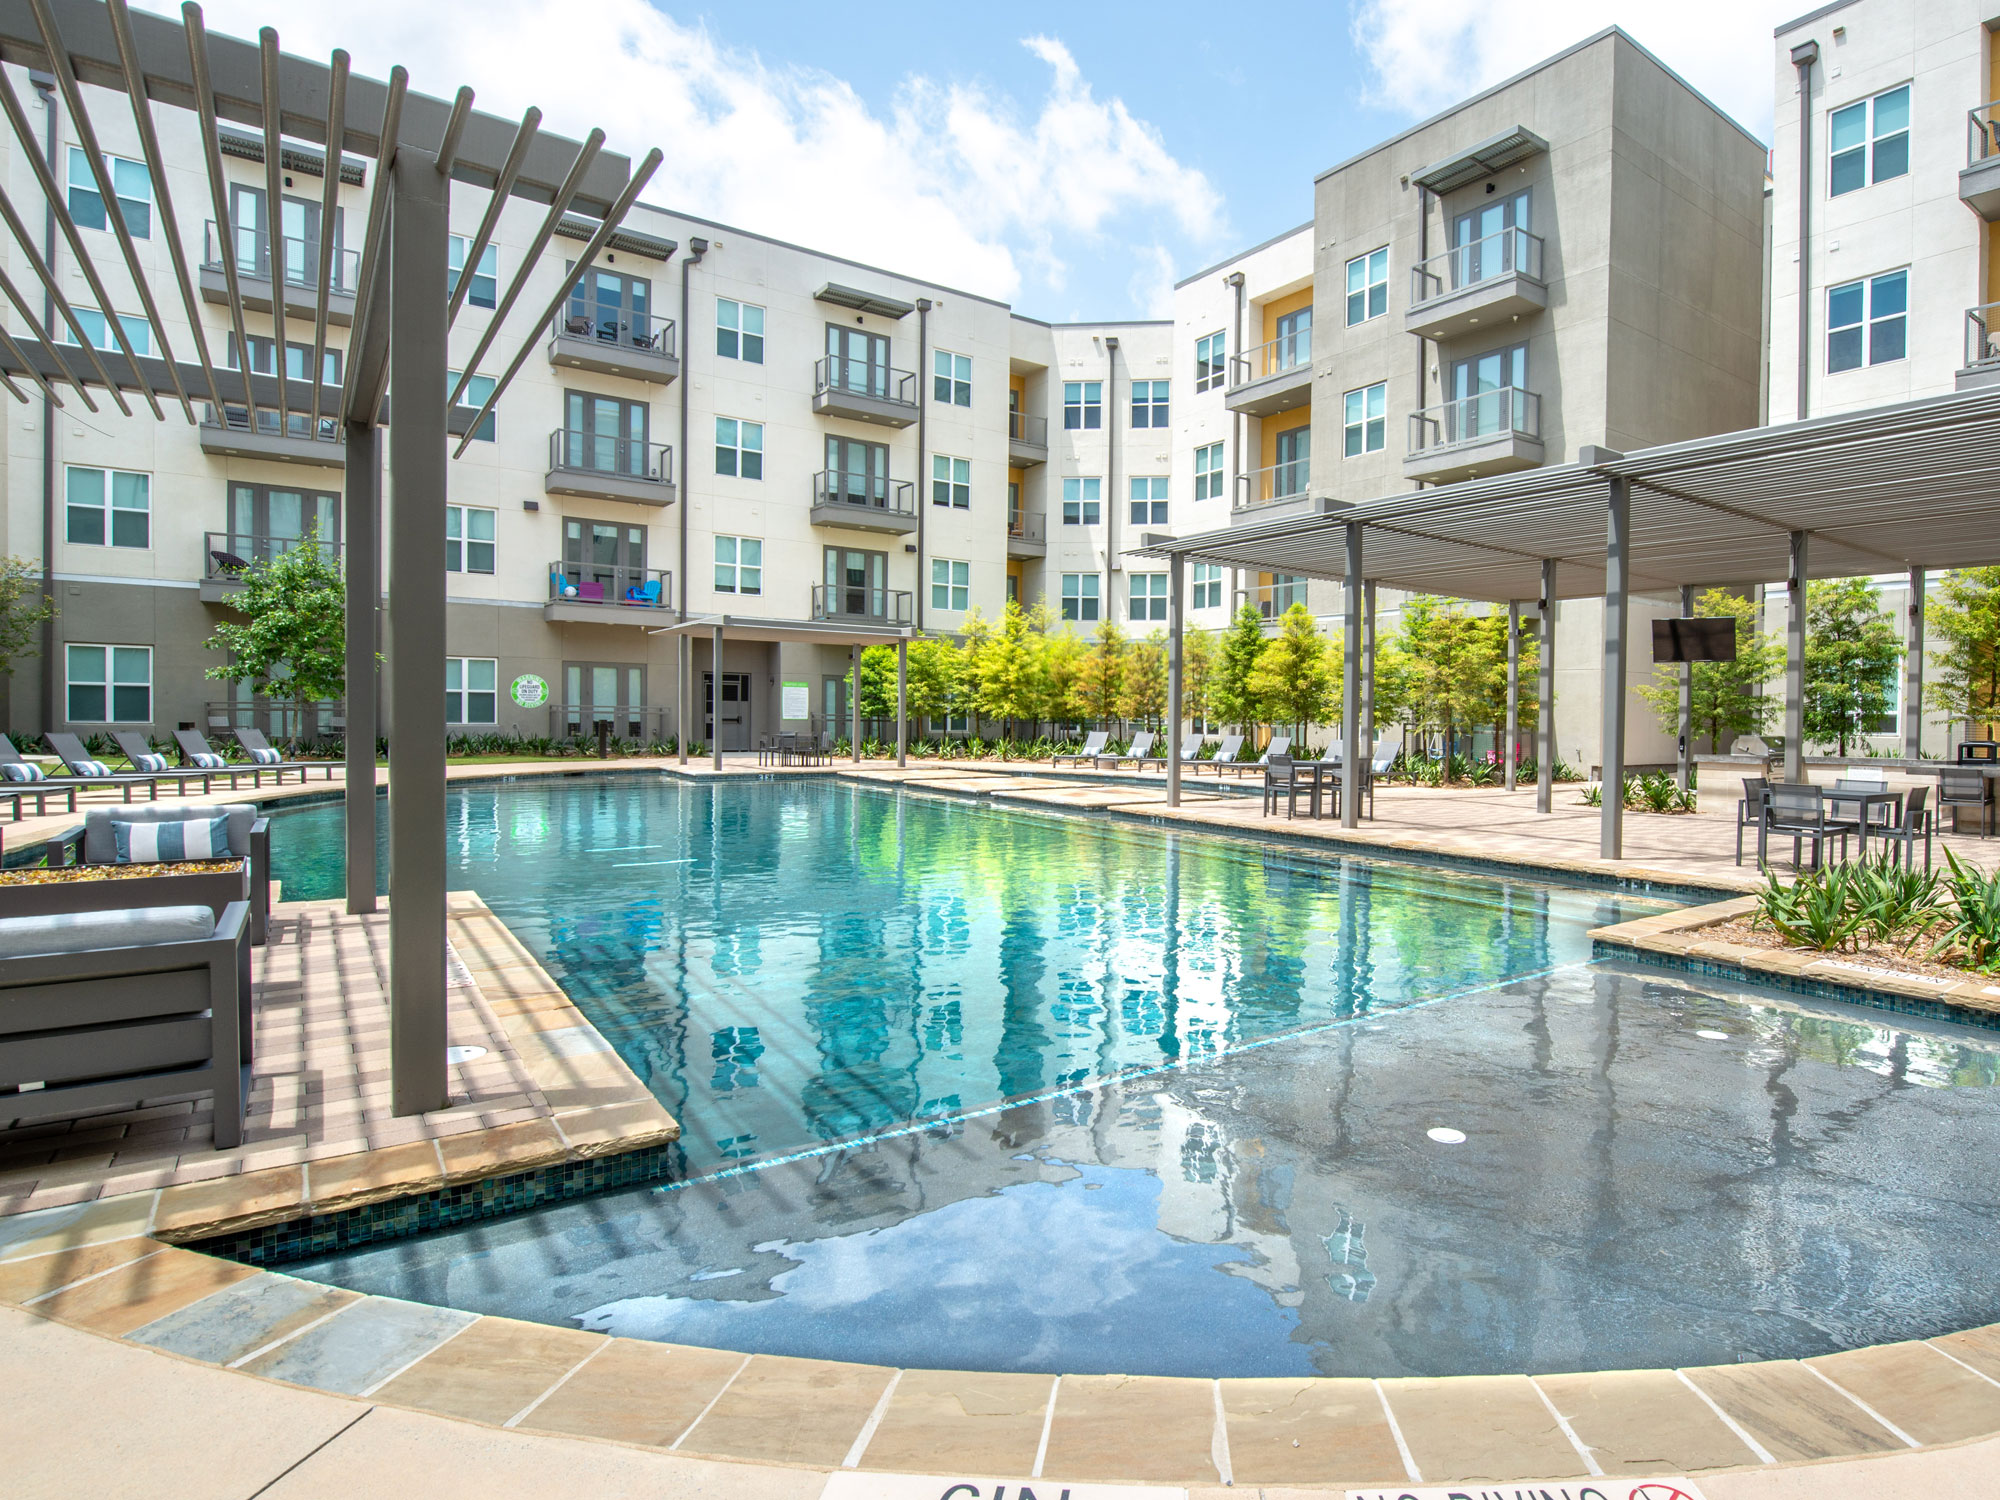 Resort style pool with tanning ledge, covered plush seating, lounge chairs and professional landscaping